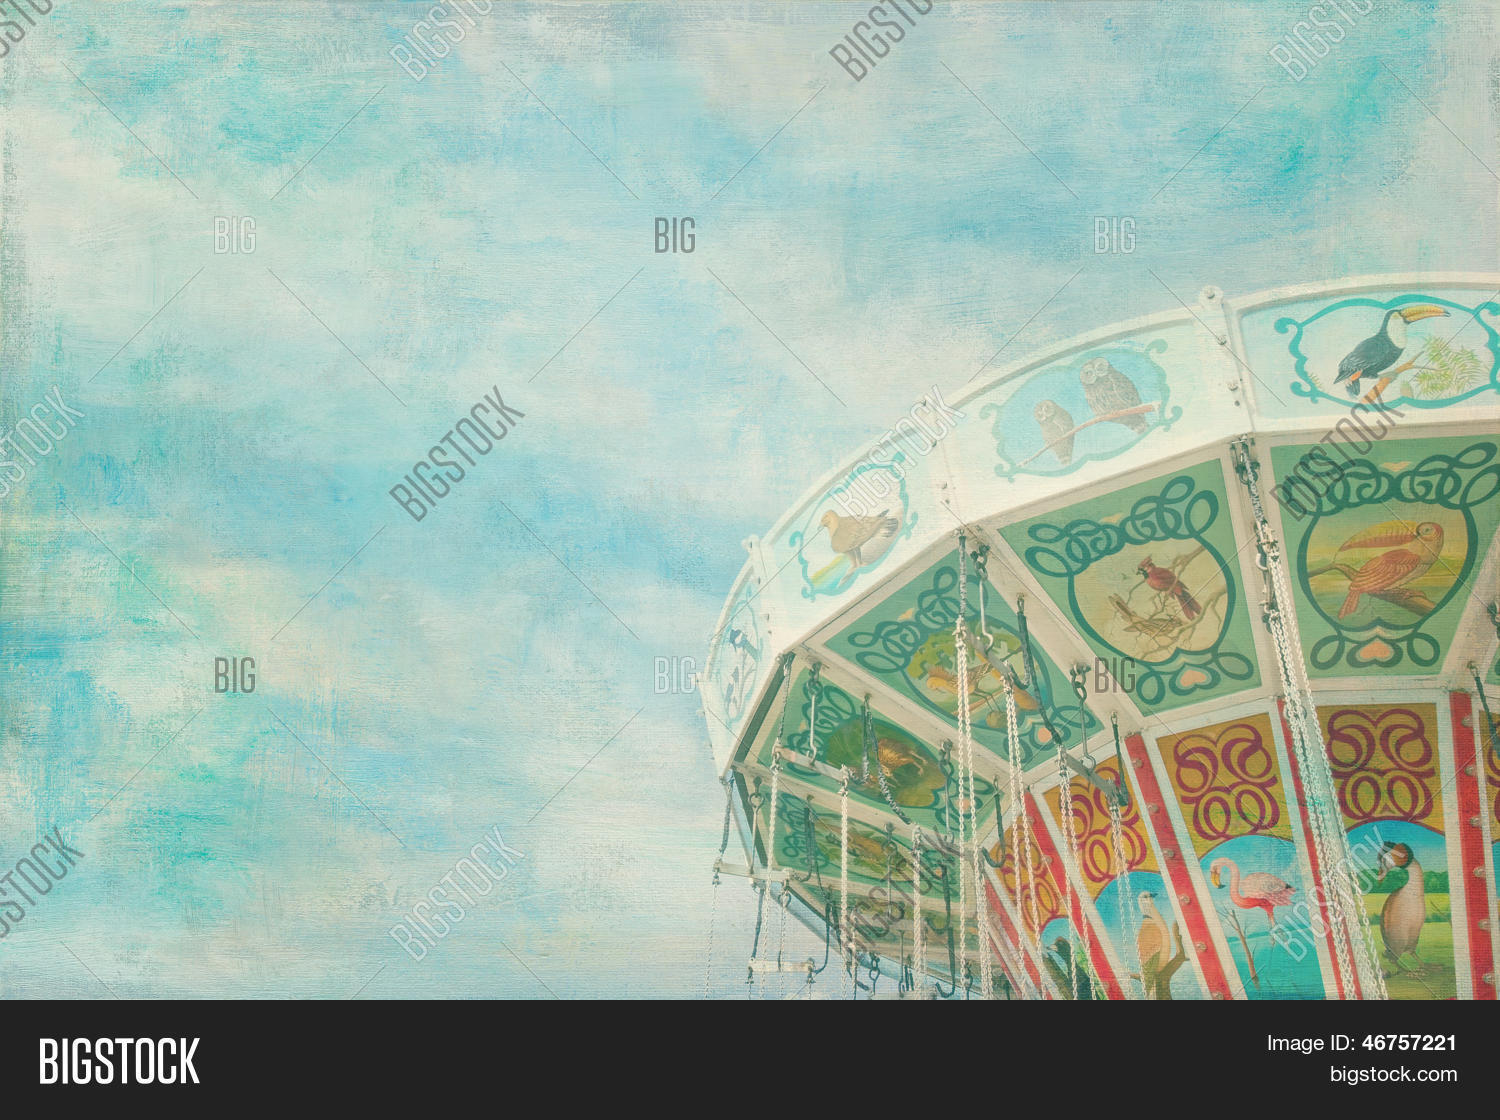 🔥 Closeup Of A Colorful Carousel With Painterly Textured Editing